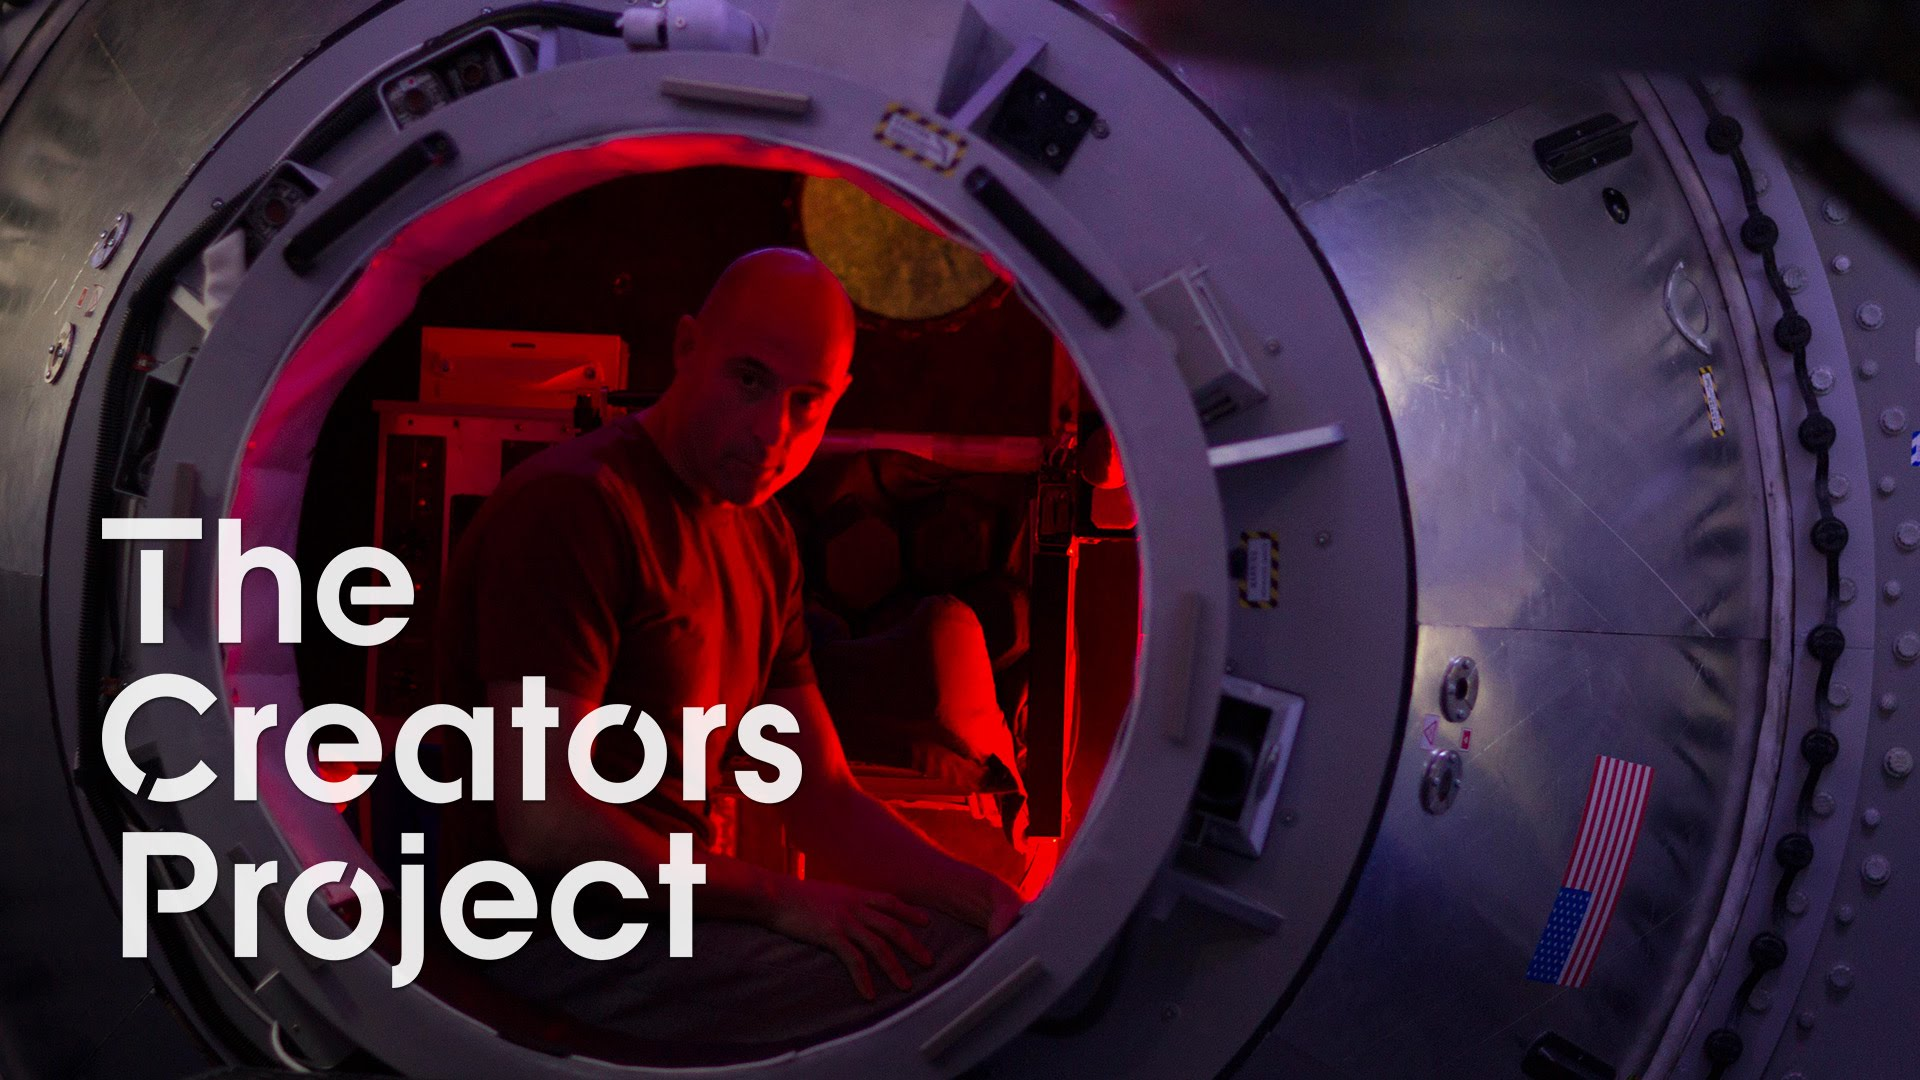 Creating Cutting-Edge Sci-Fi with Analog Effects